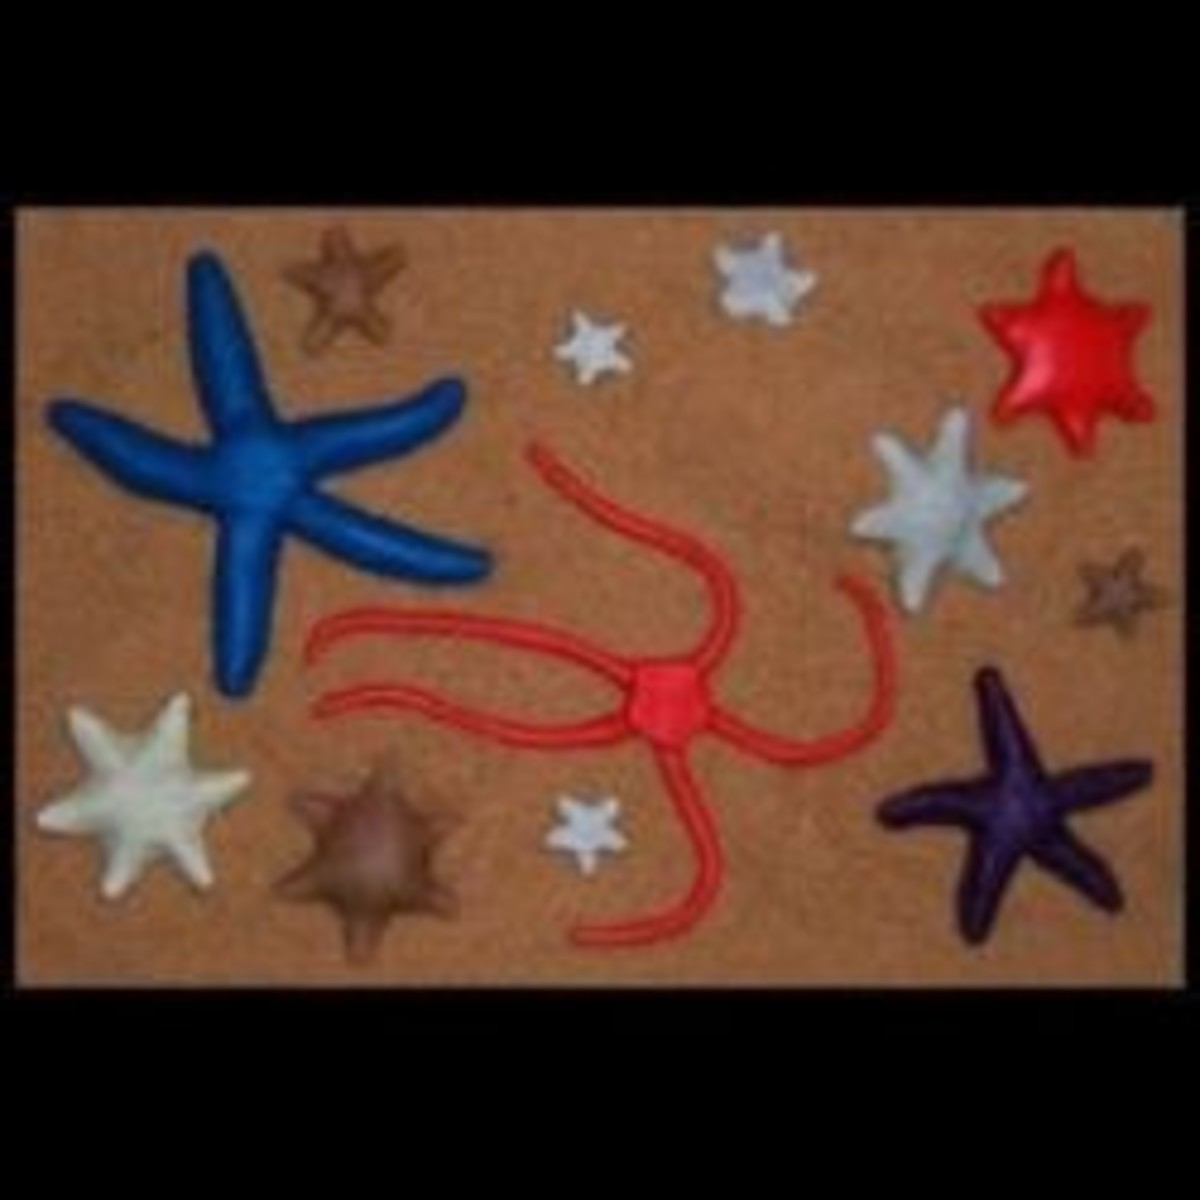 Learn to make this assortment of sea stars and starfish from fondant or gumpaste.